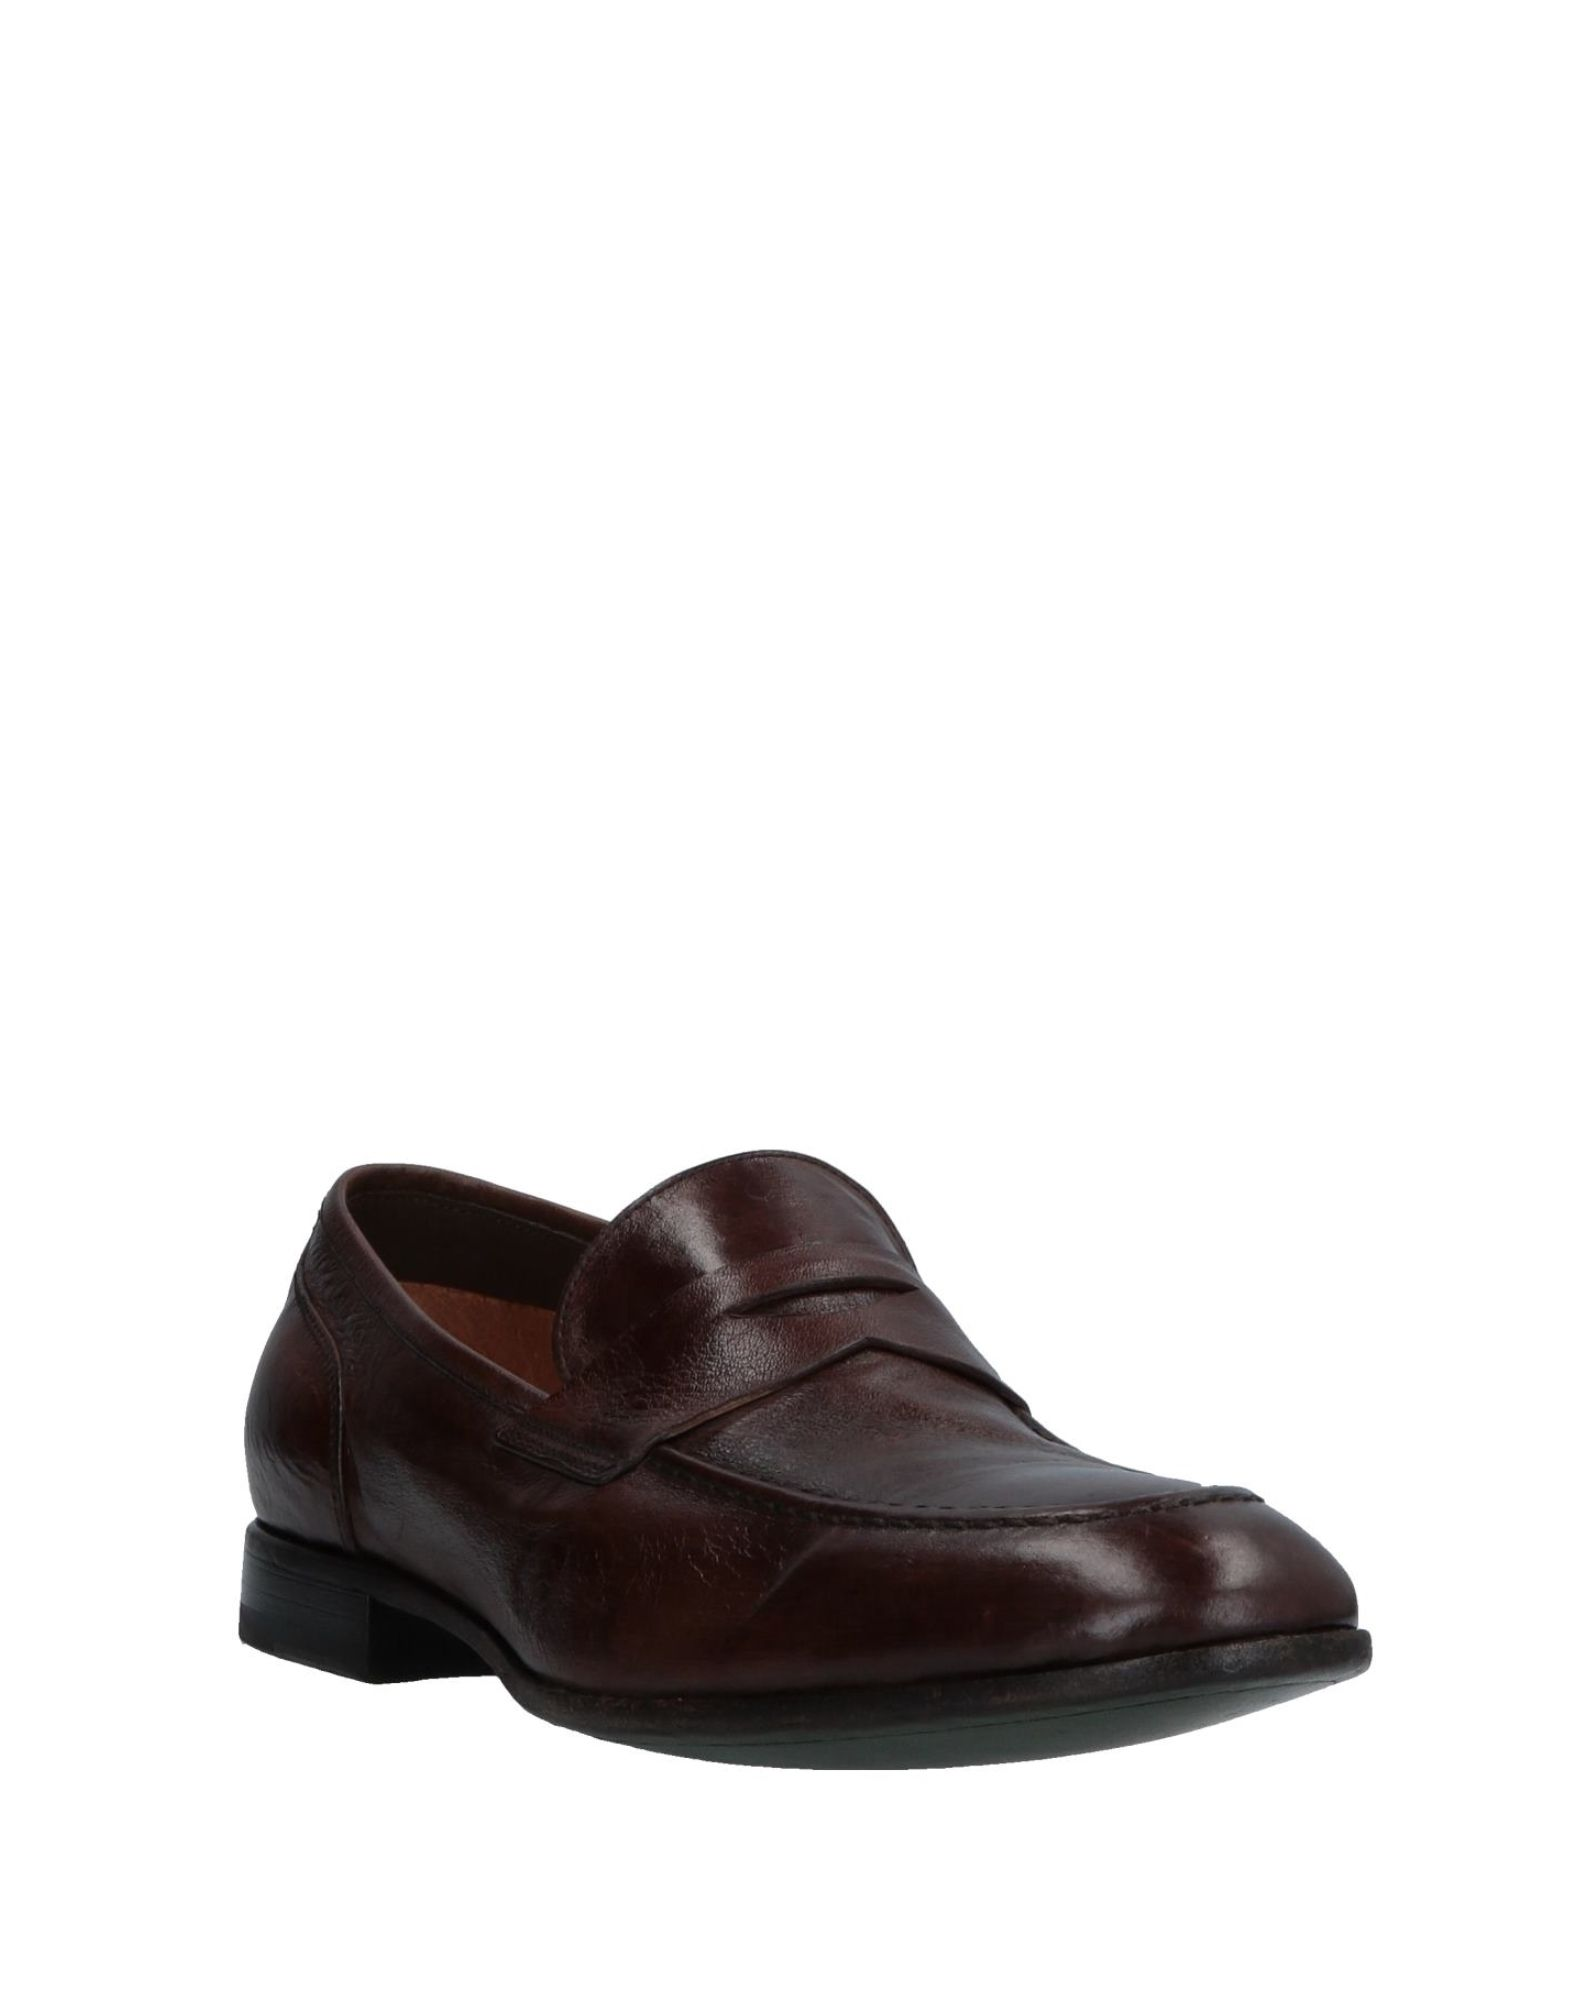 Green George Loafers - Men Green George Loafers Loafers Loafers online on  Canada - 11578494KX d2c635